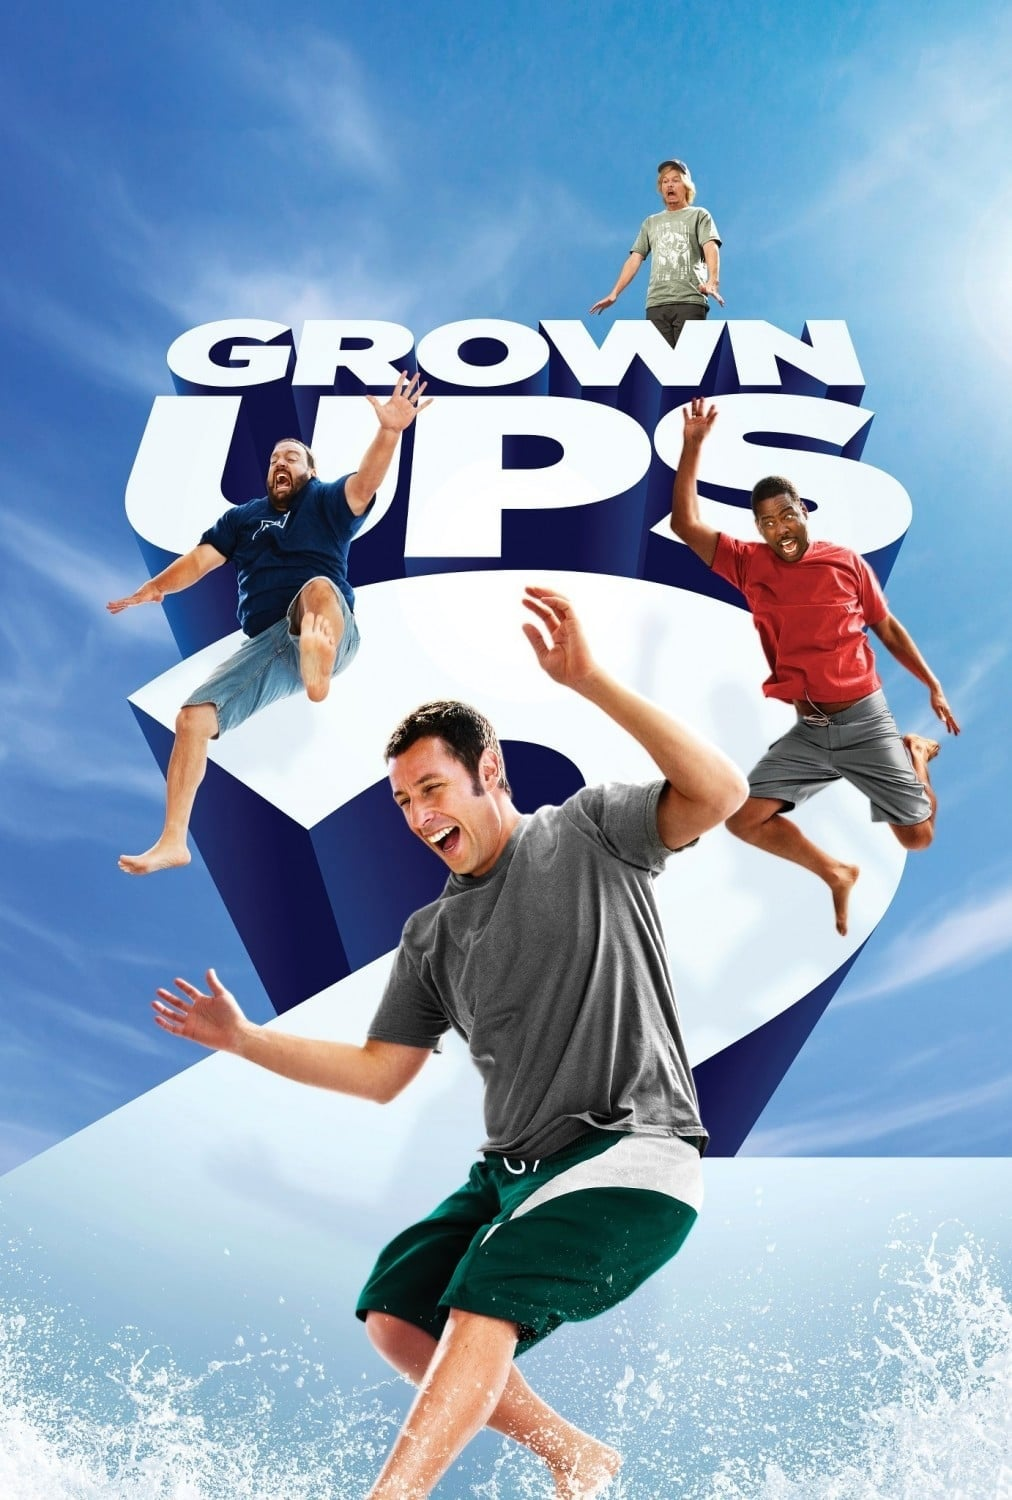 Grown Ups 2 Movie Streaming Online Watch on Amazon, Google Play, Sony LIV, Youtube, iTunes